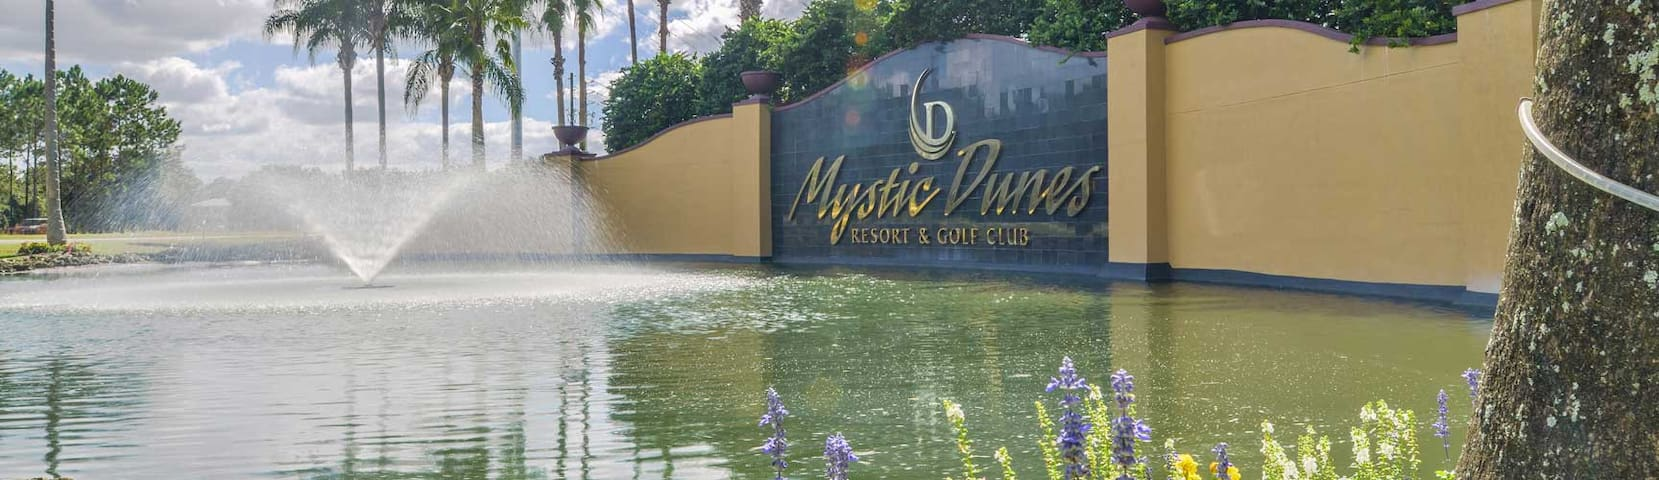 Mystic Dunes Resort Golf Club 2br 2ba Condominiums For Rent In Celebration Florida